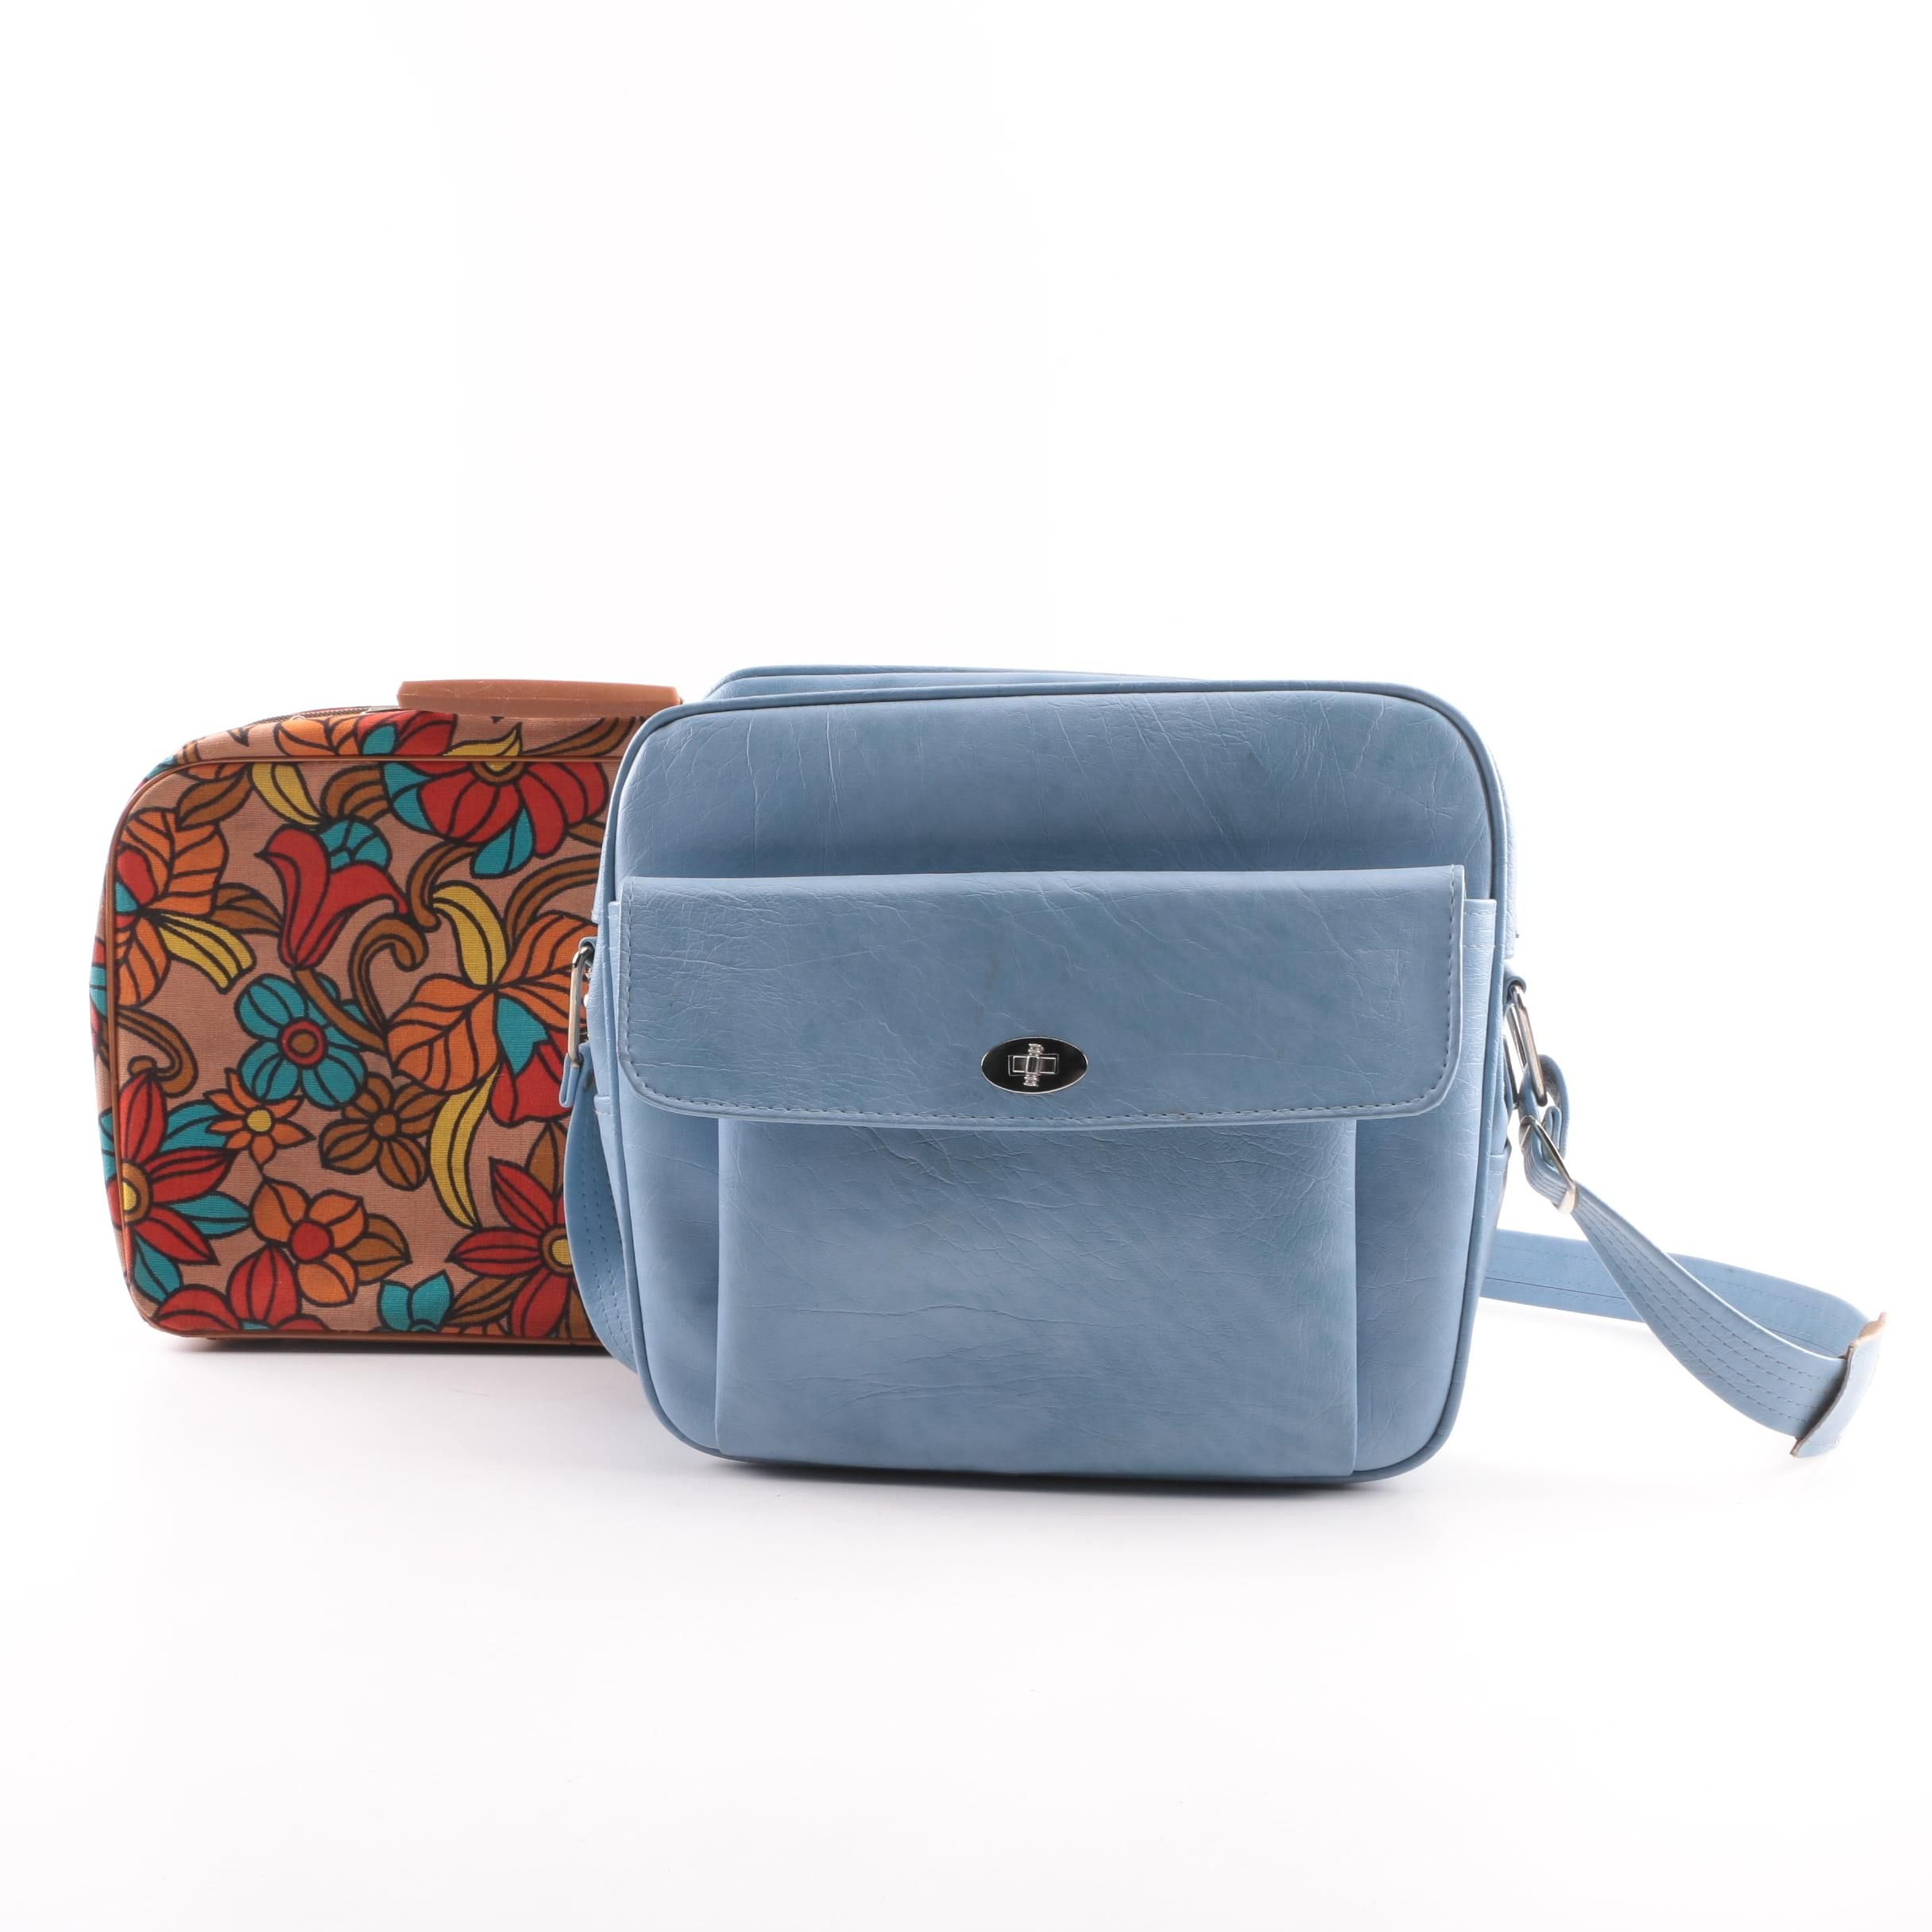 Circa 1970s Vintage Floral Canvas and Blue Vinyl Travel Carry-On Bags